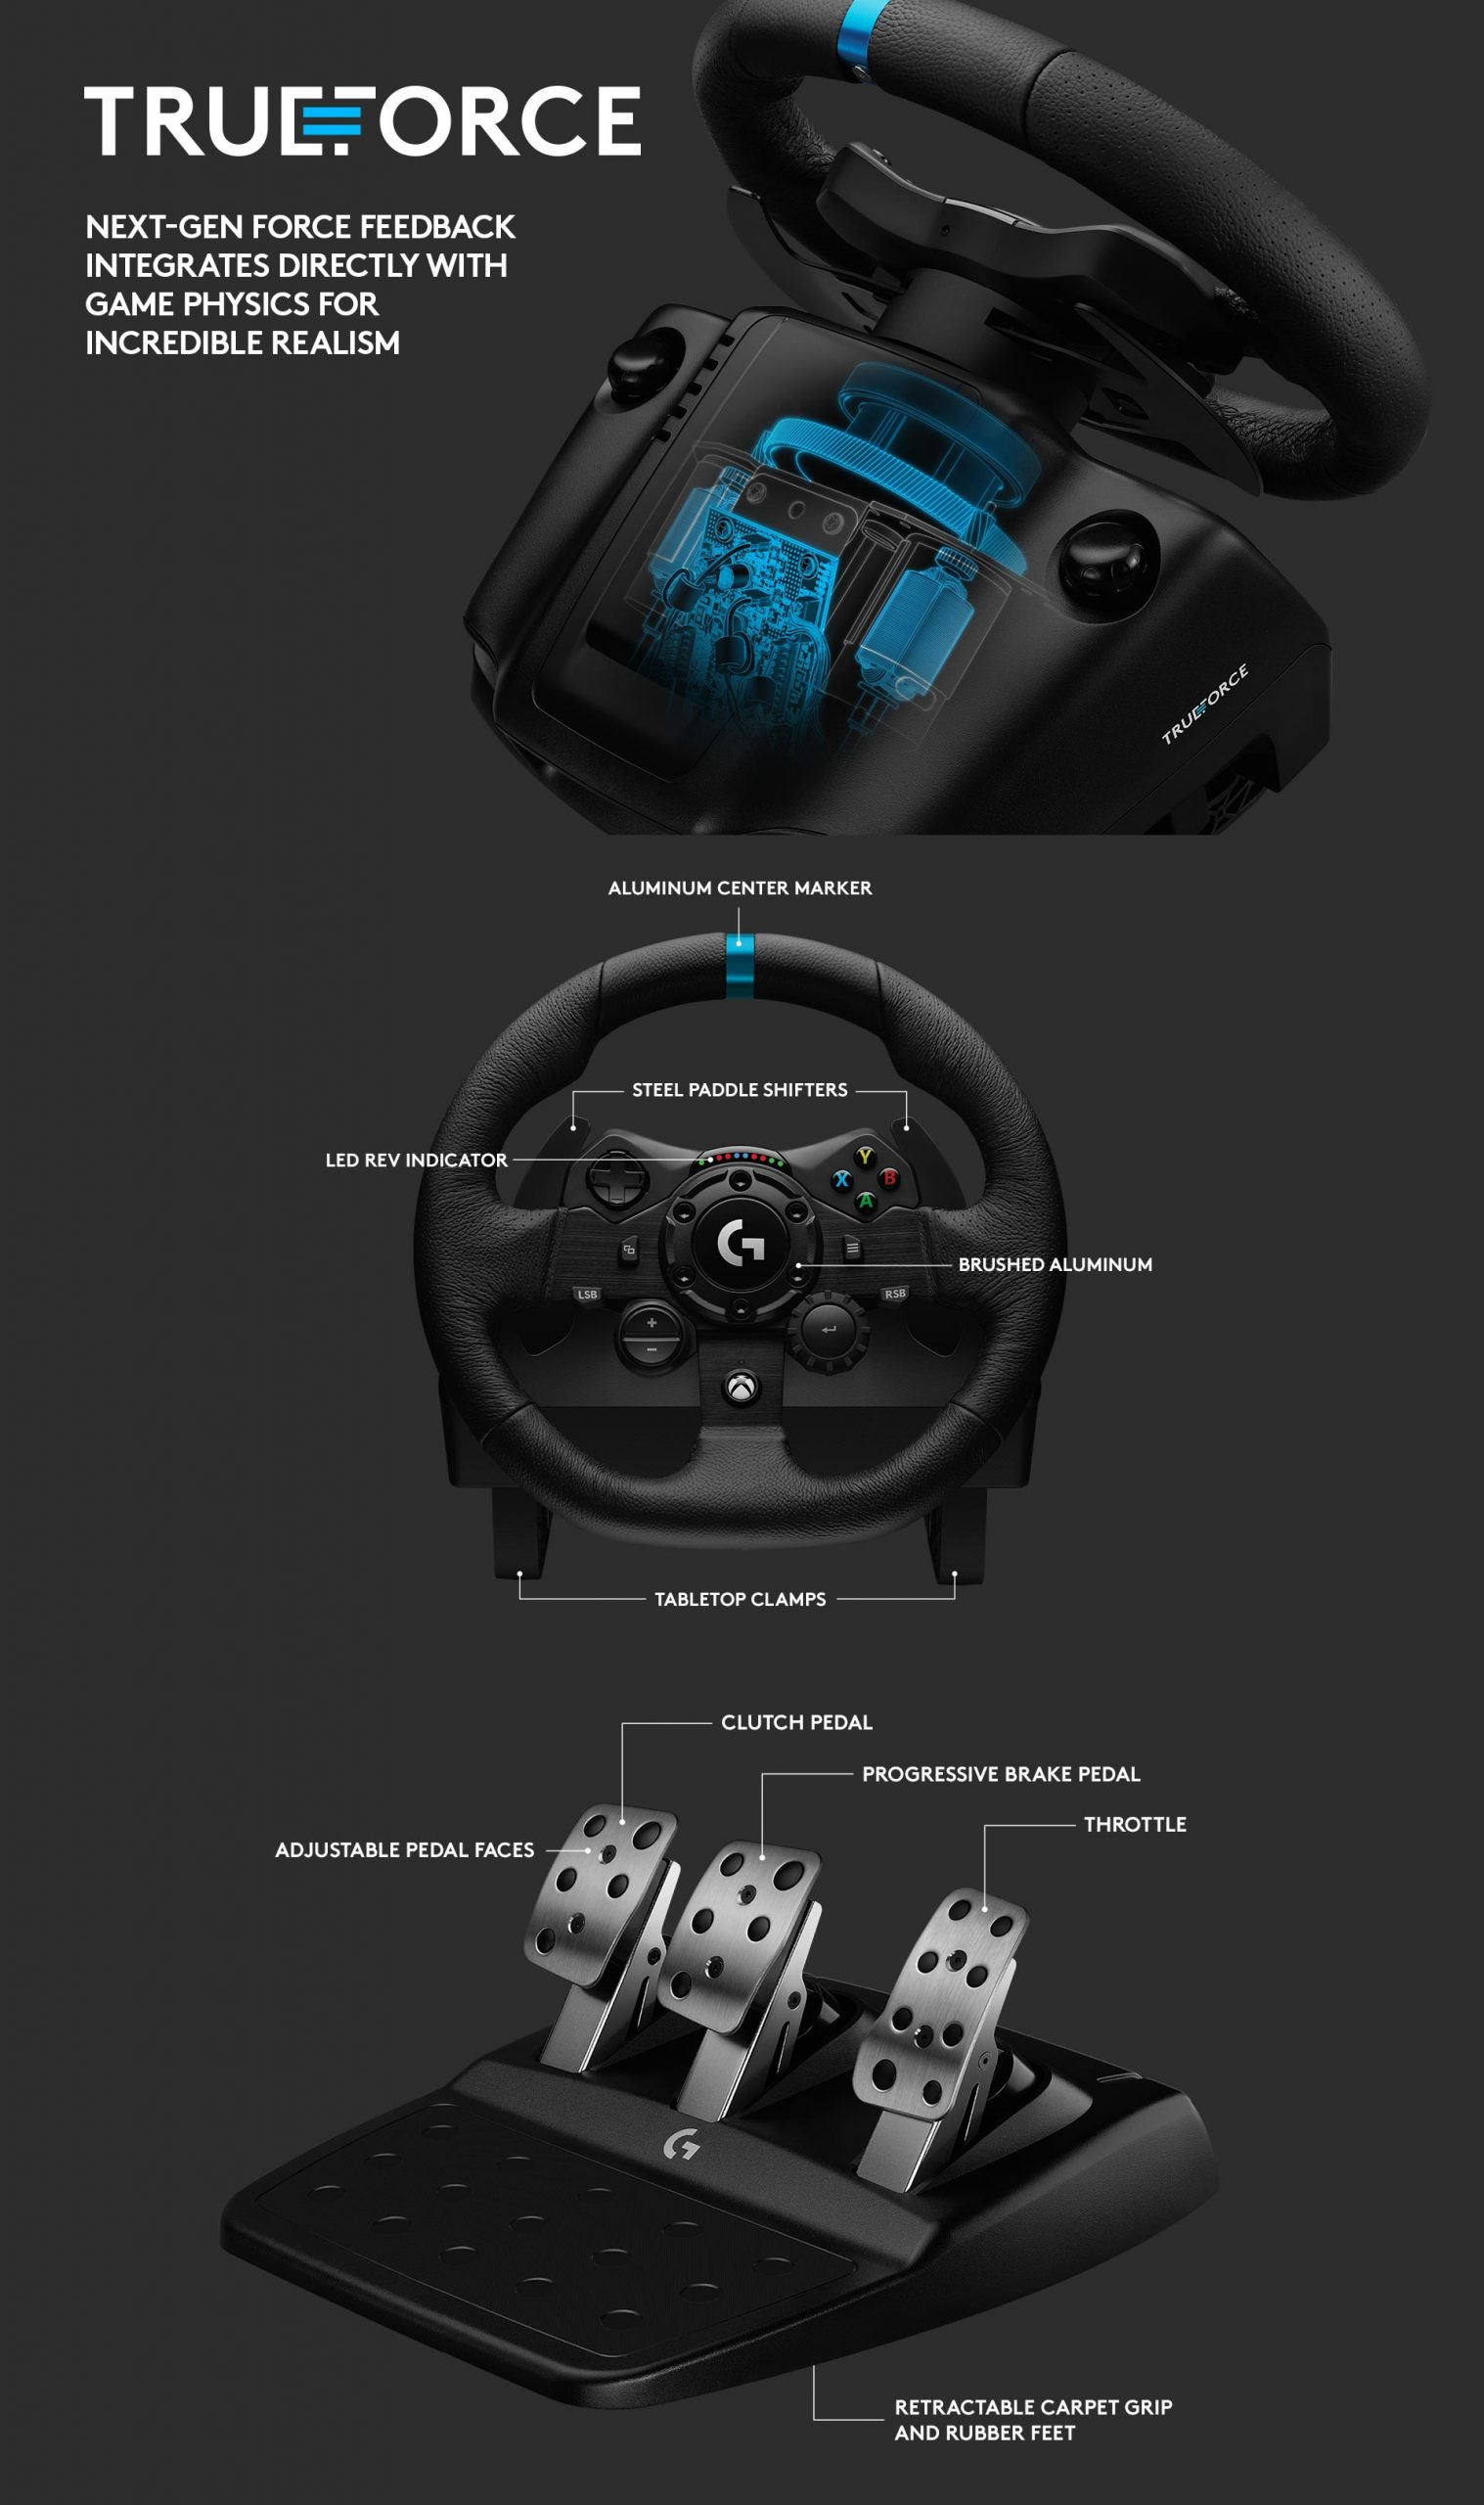 Features of the Logitech G923 Racing Wheel